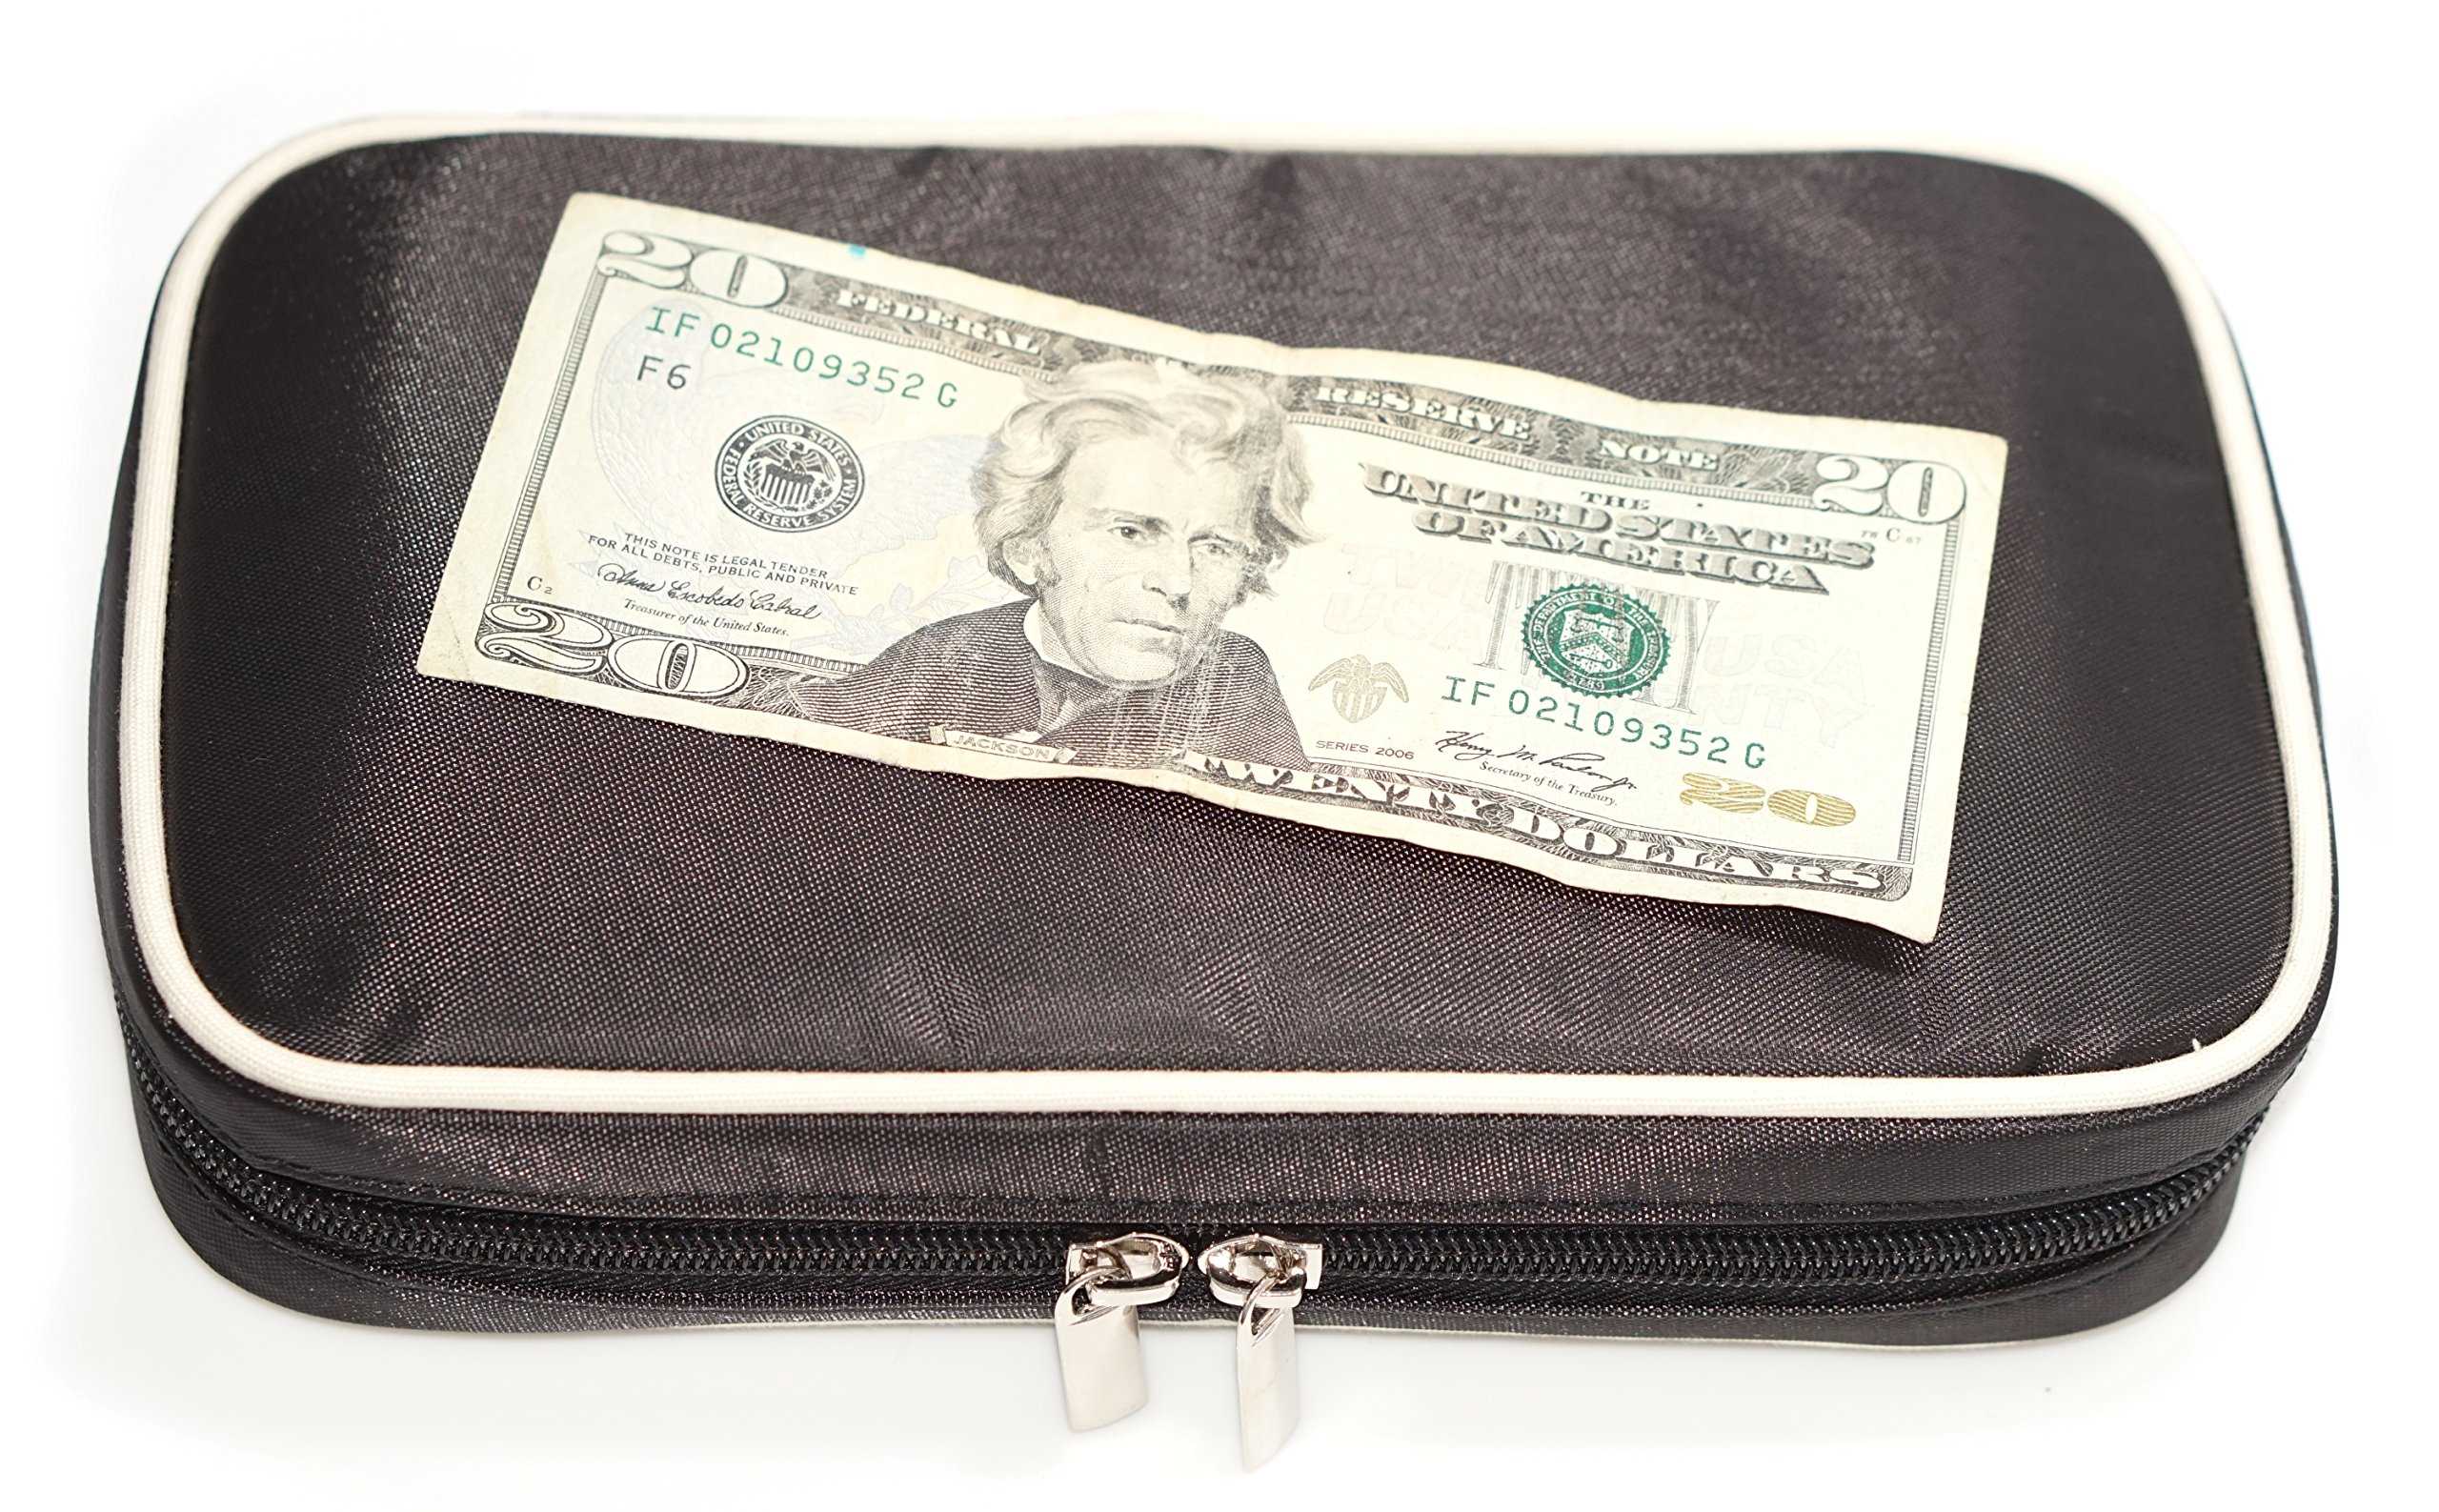 Jewelry & Accessories Travel Organizer Bag Case (Black) by Simple Accessories (Image #4)